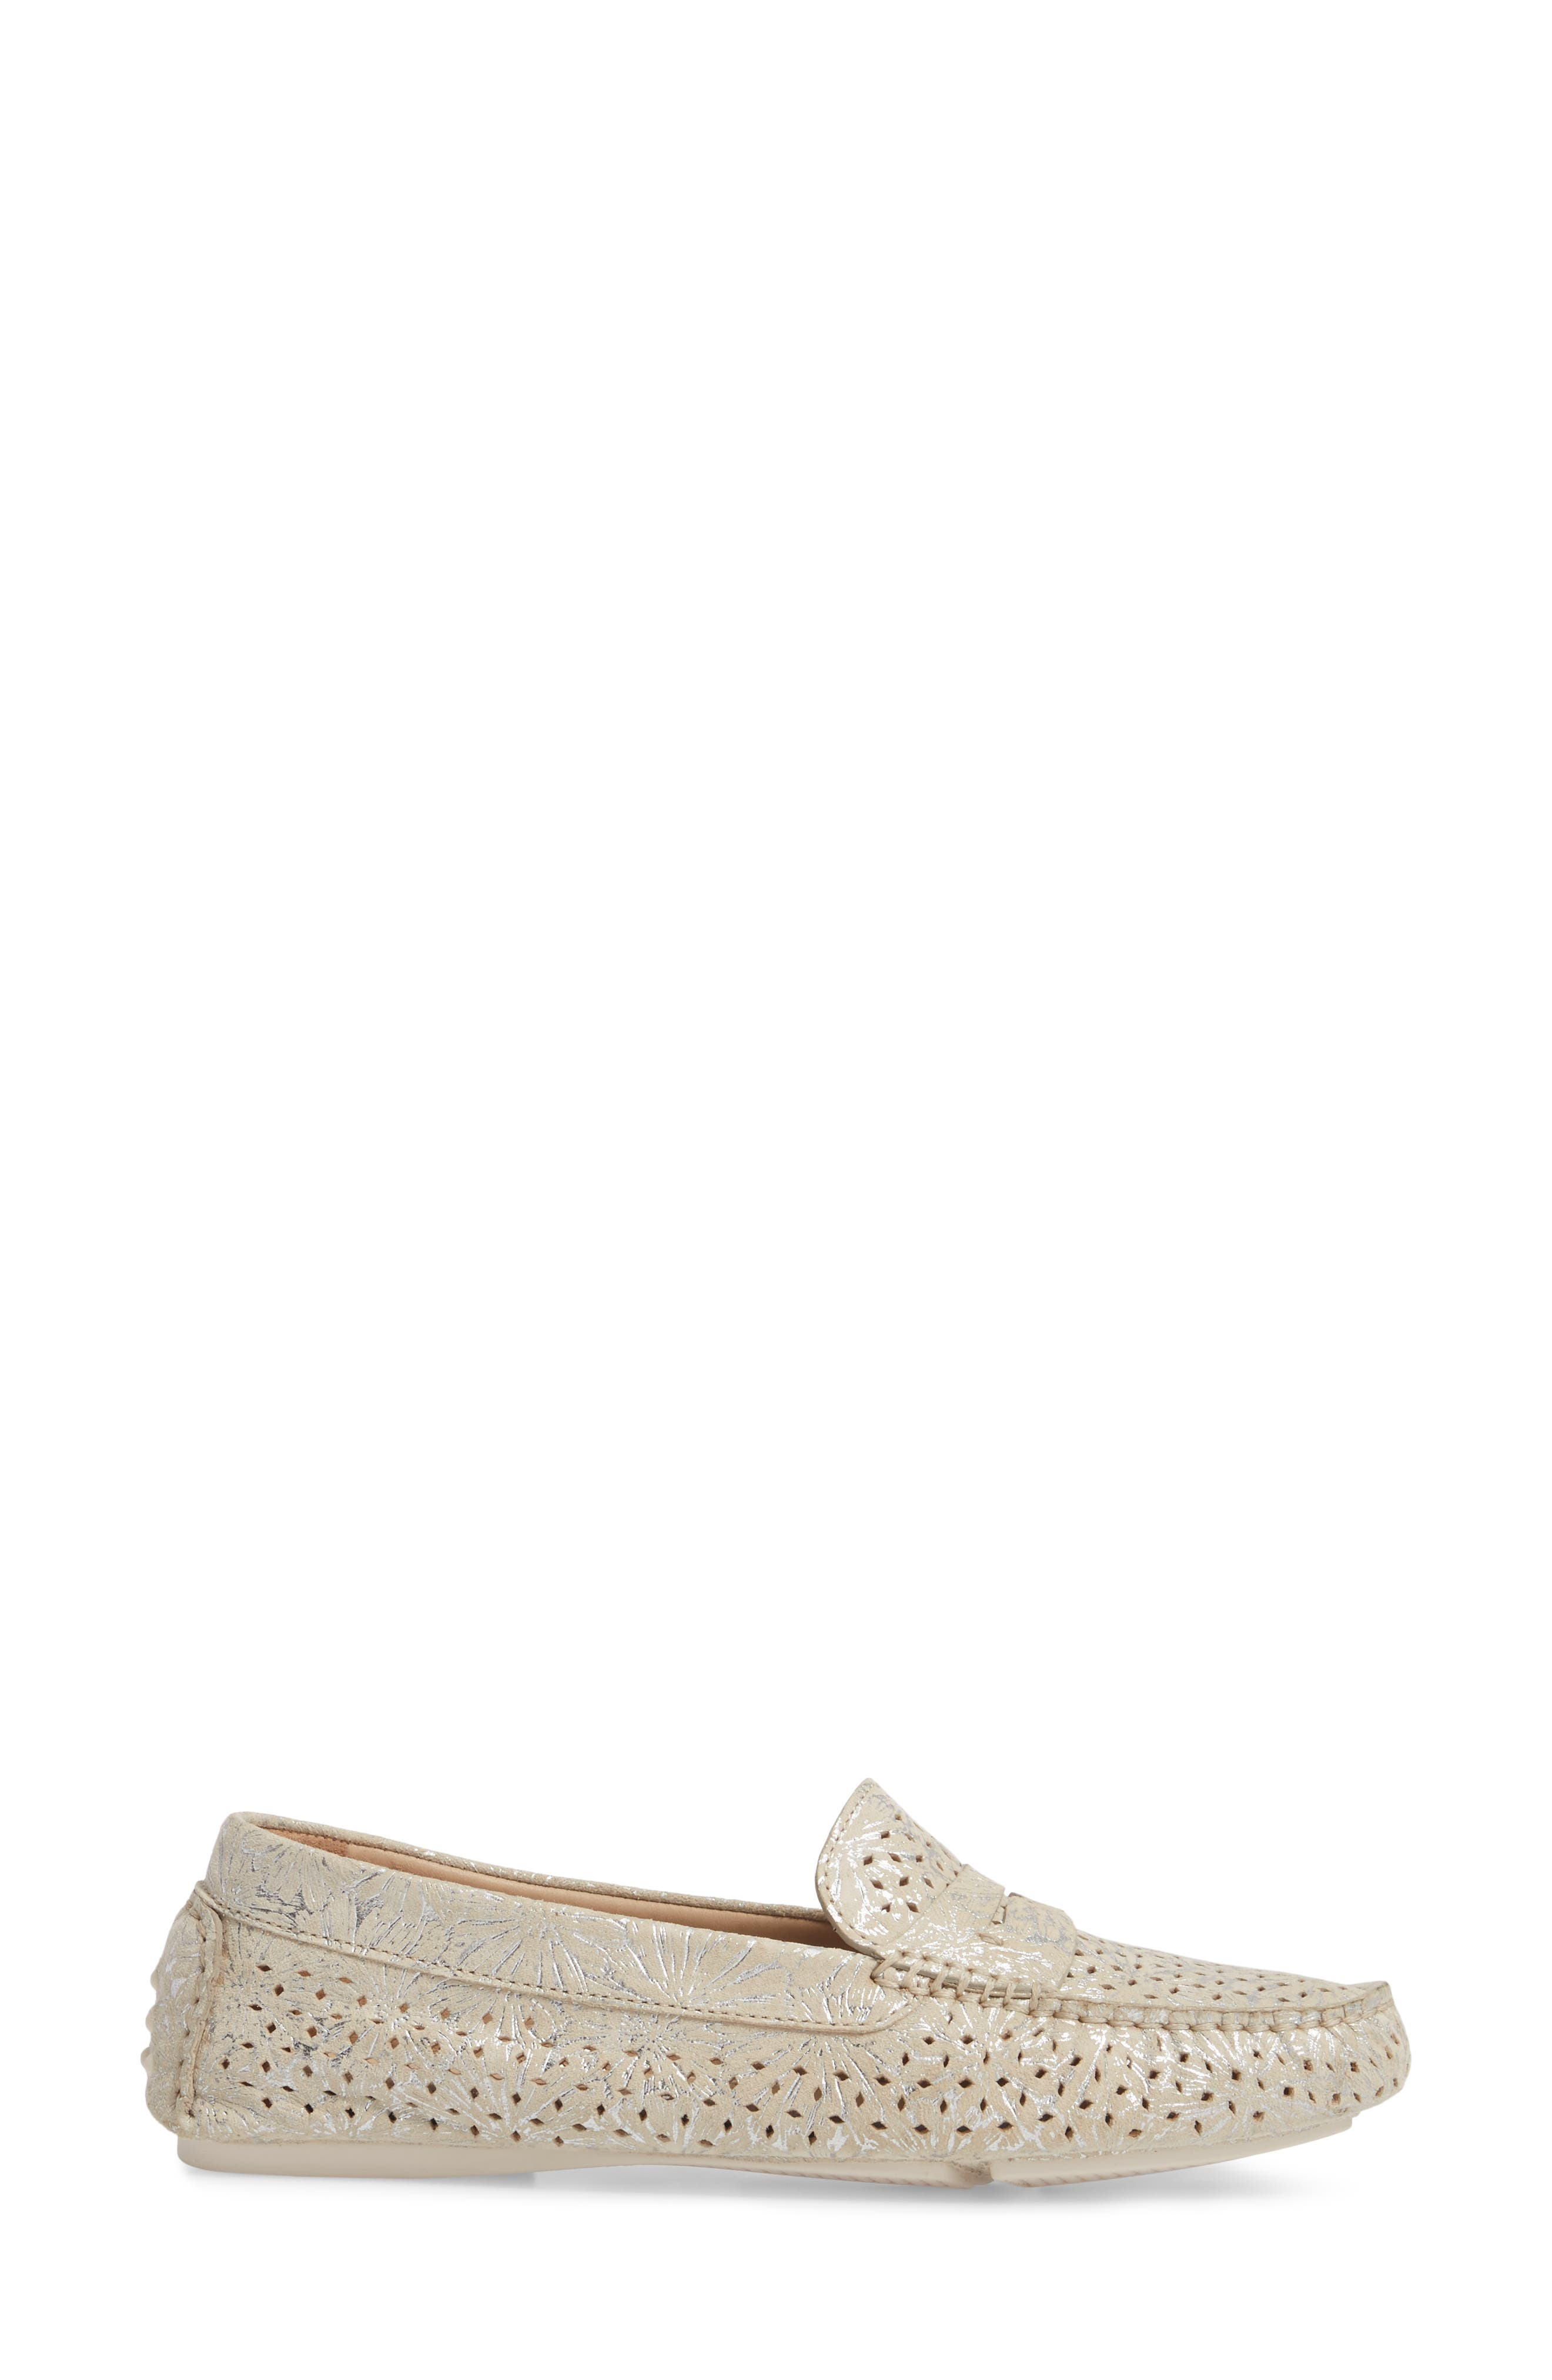 'Maggie' Penny Loafer,                             Alternate thumbnail 3, color,                             CREAM SUEDE